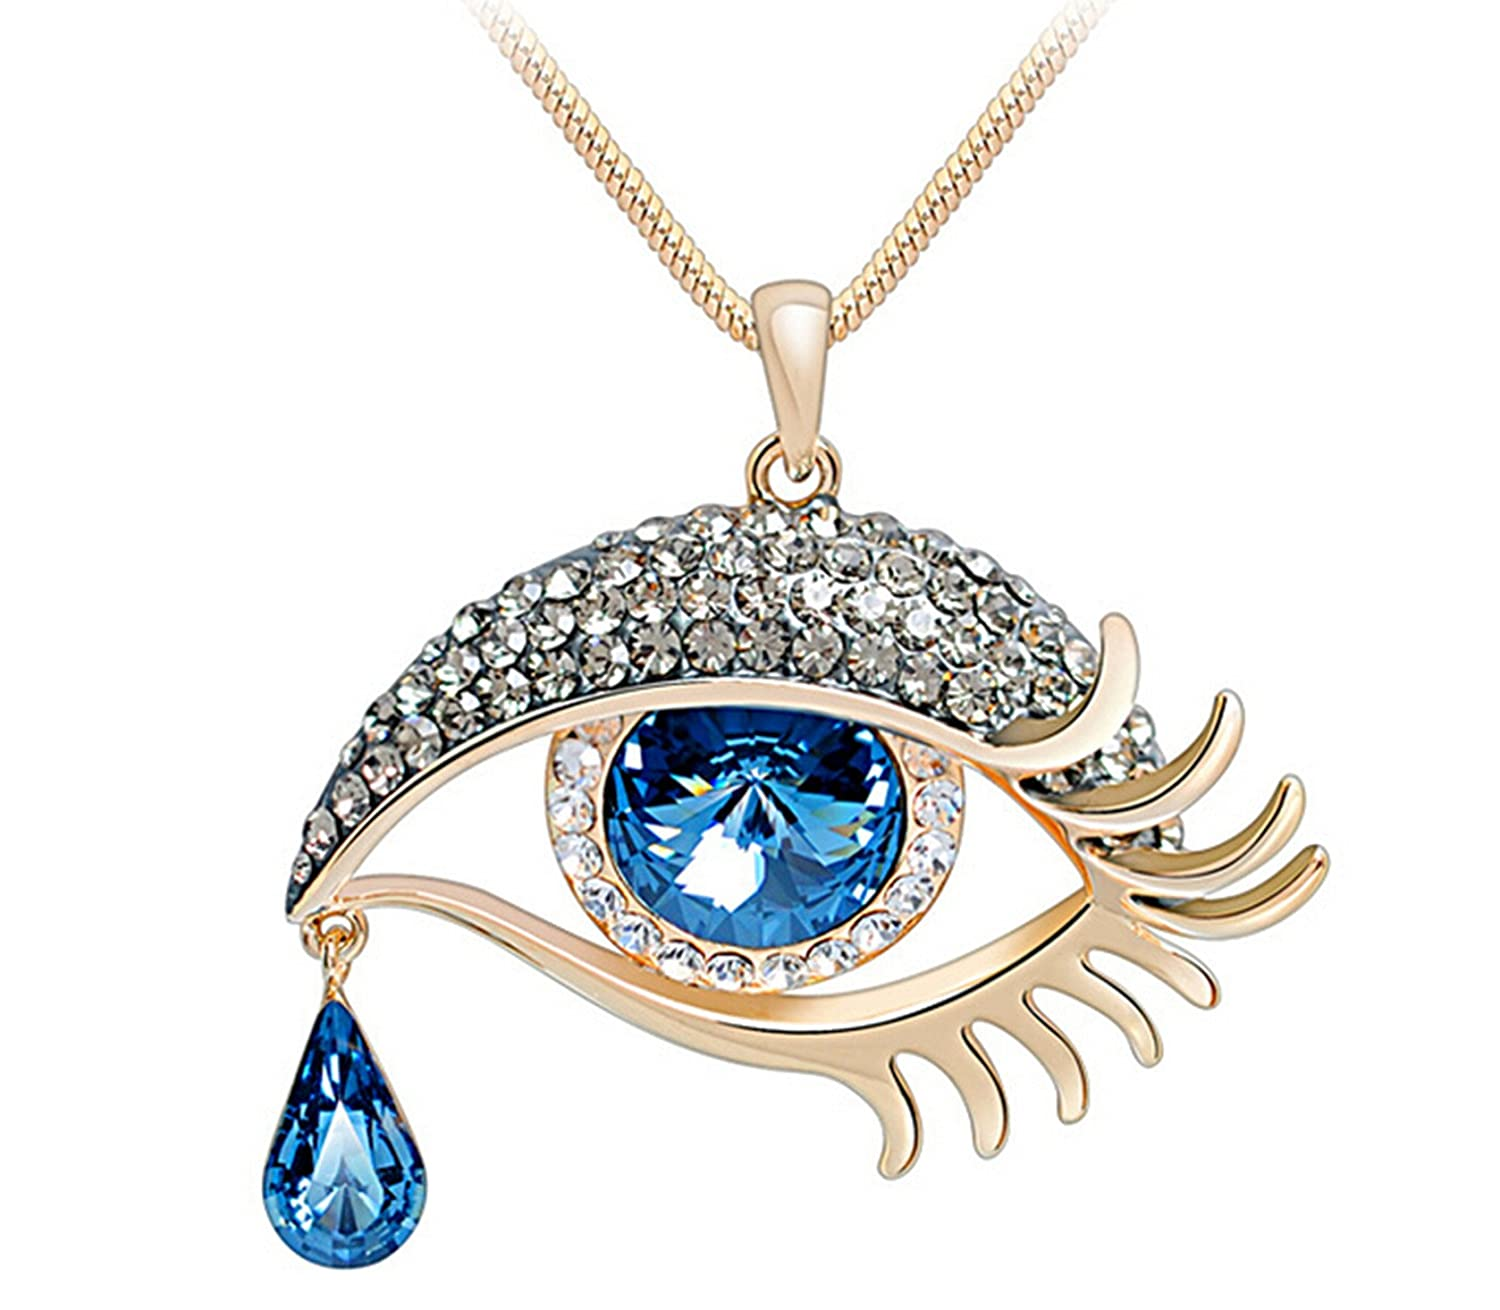 necklace b photos finally silver and blue eyeball ashleyspatula good flickr flying some by